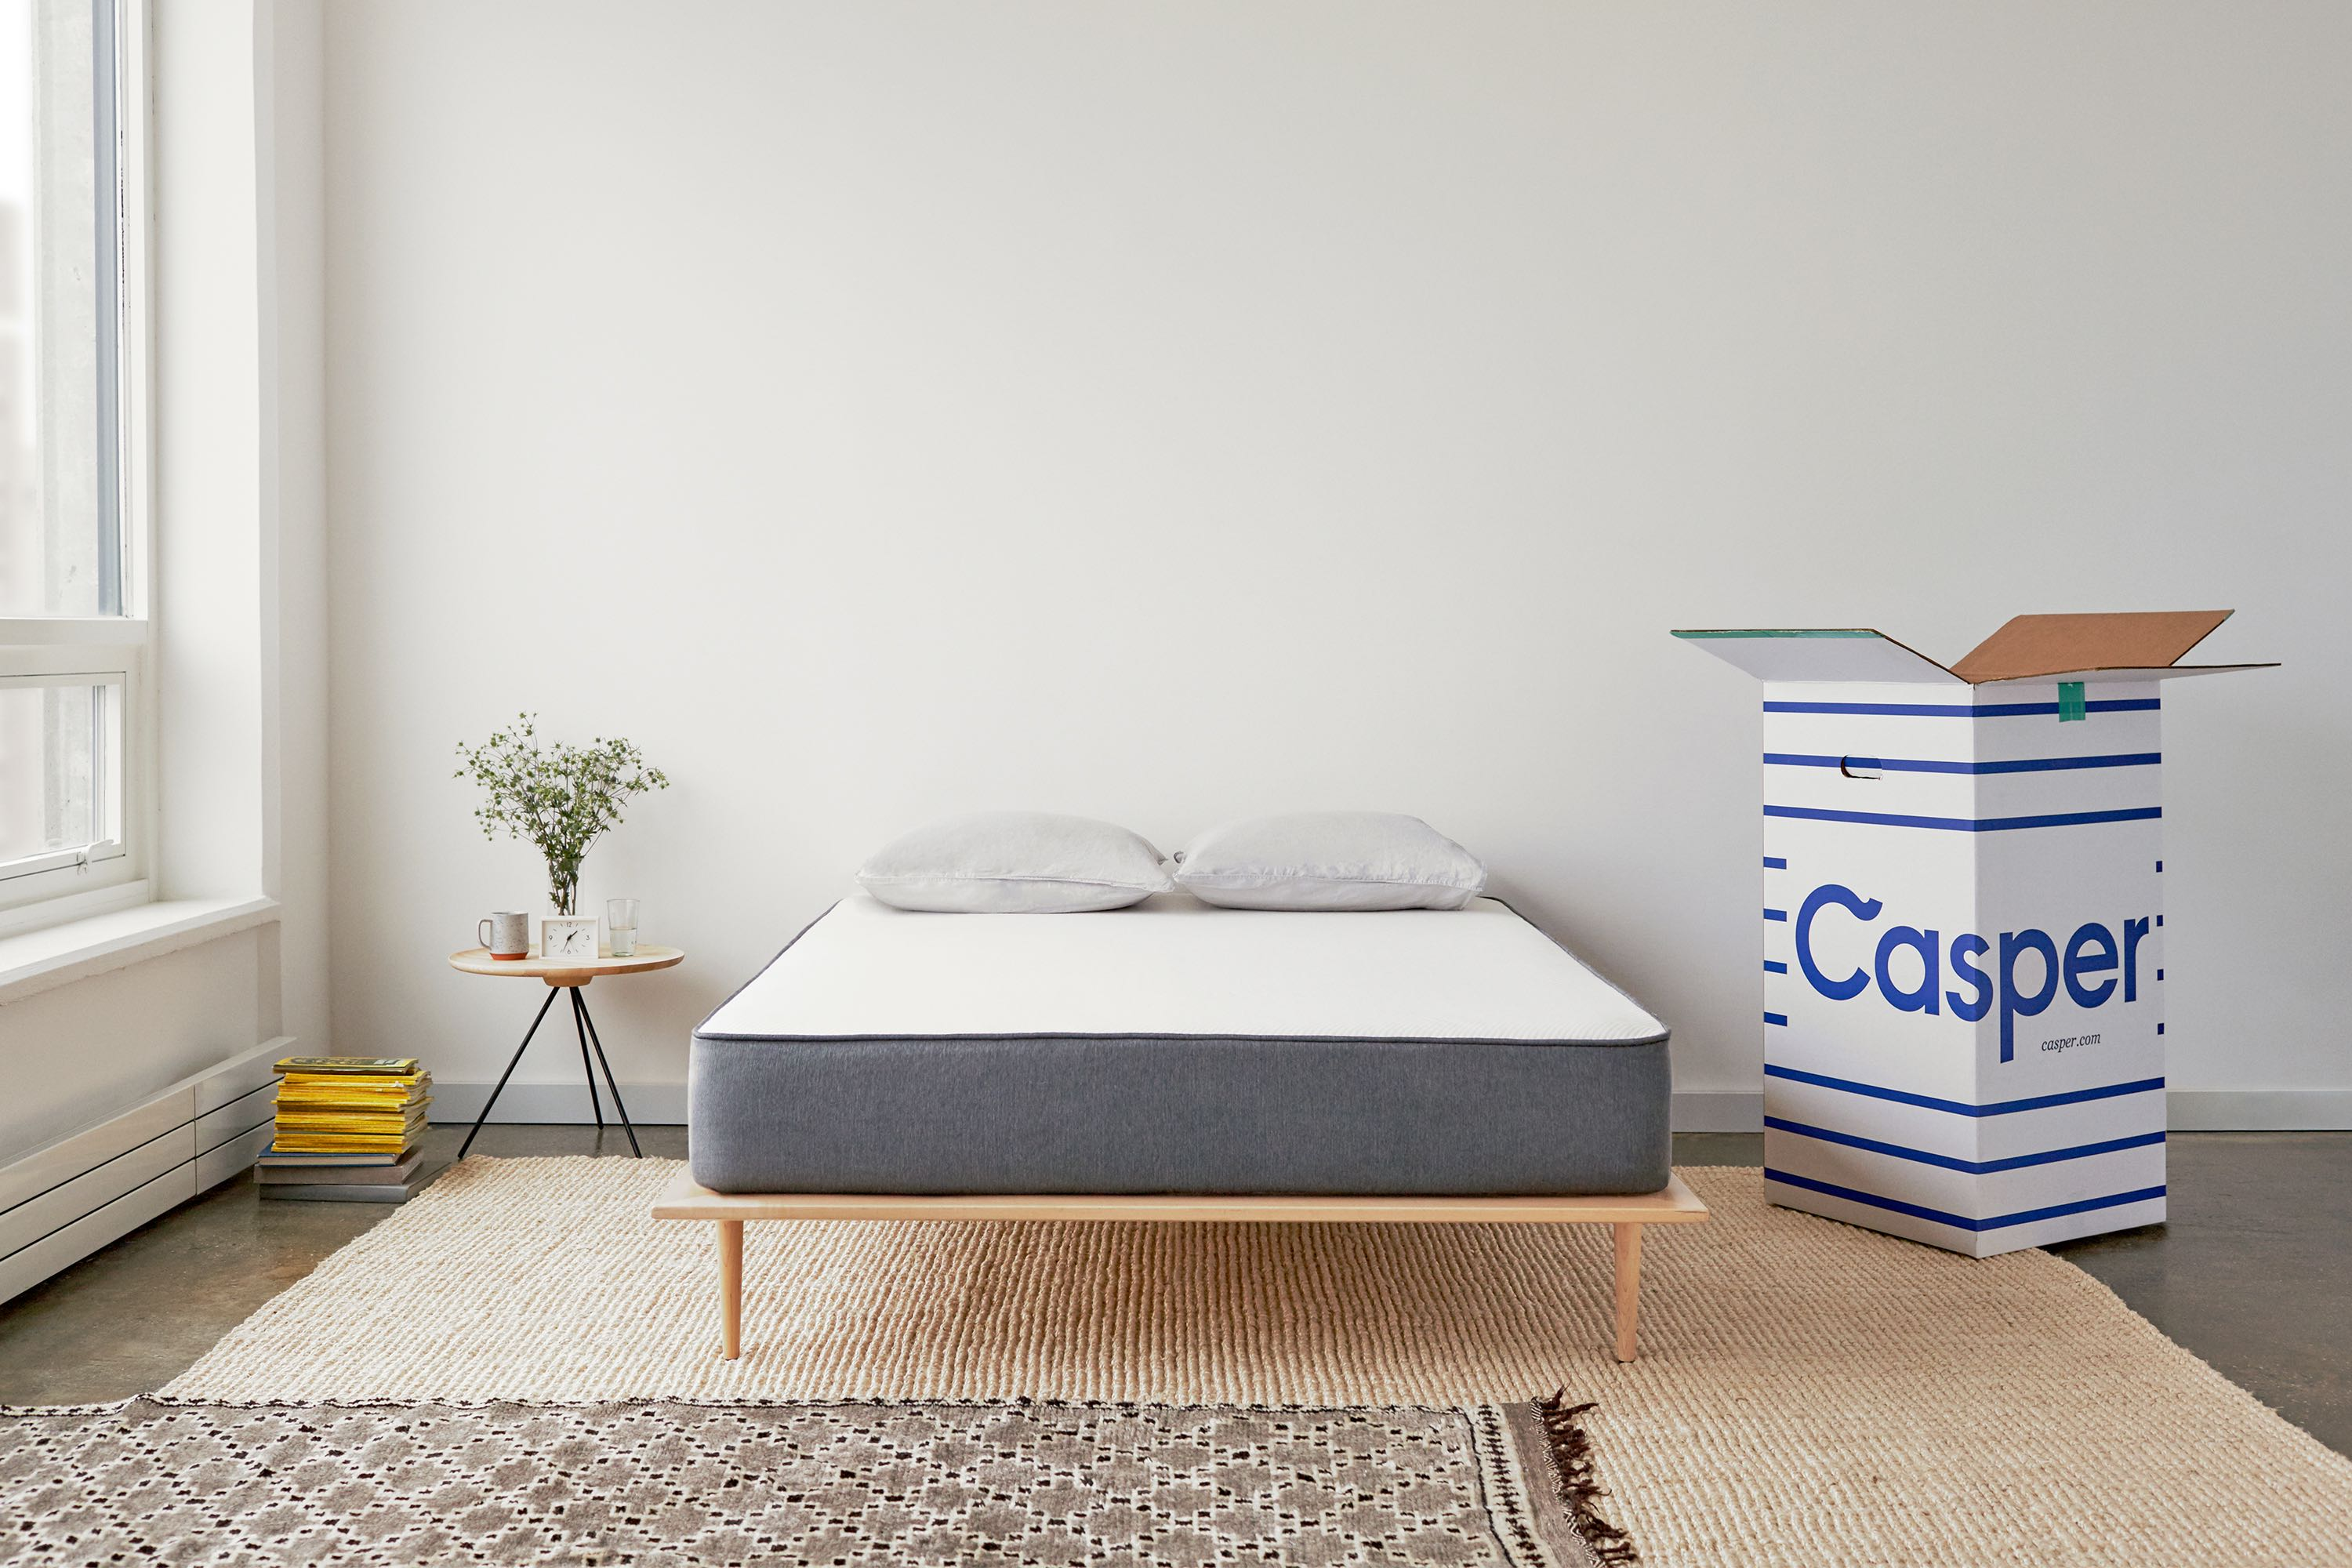 Ghostbed vs. Casper Comparison, Reviews And Buying Guide by www.snoremagazine.com